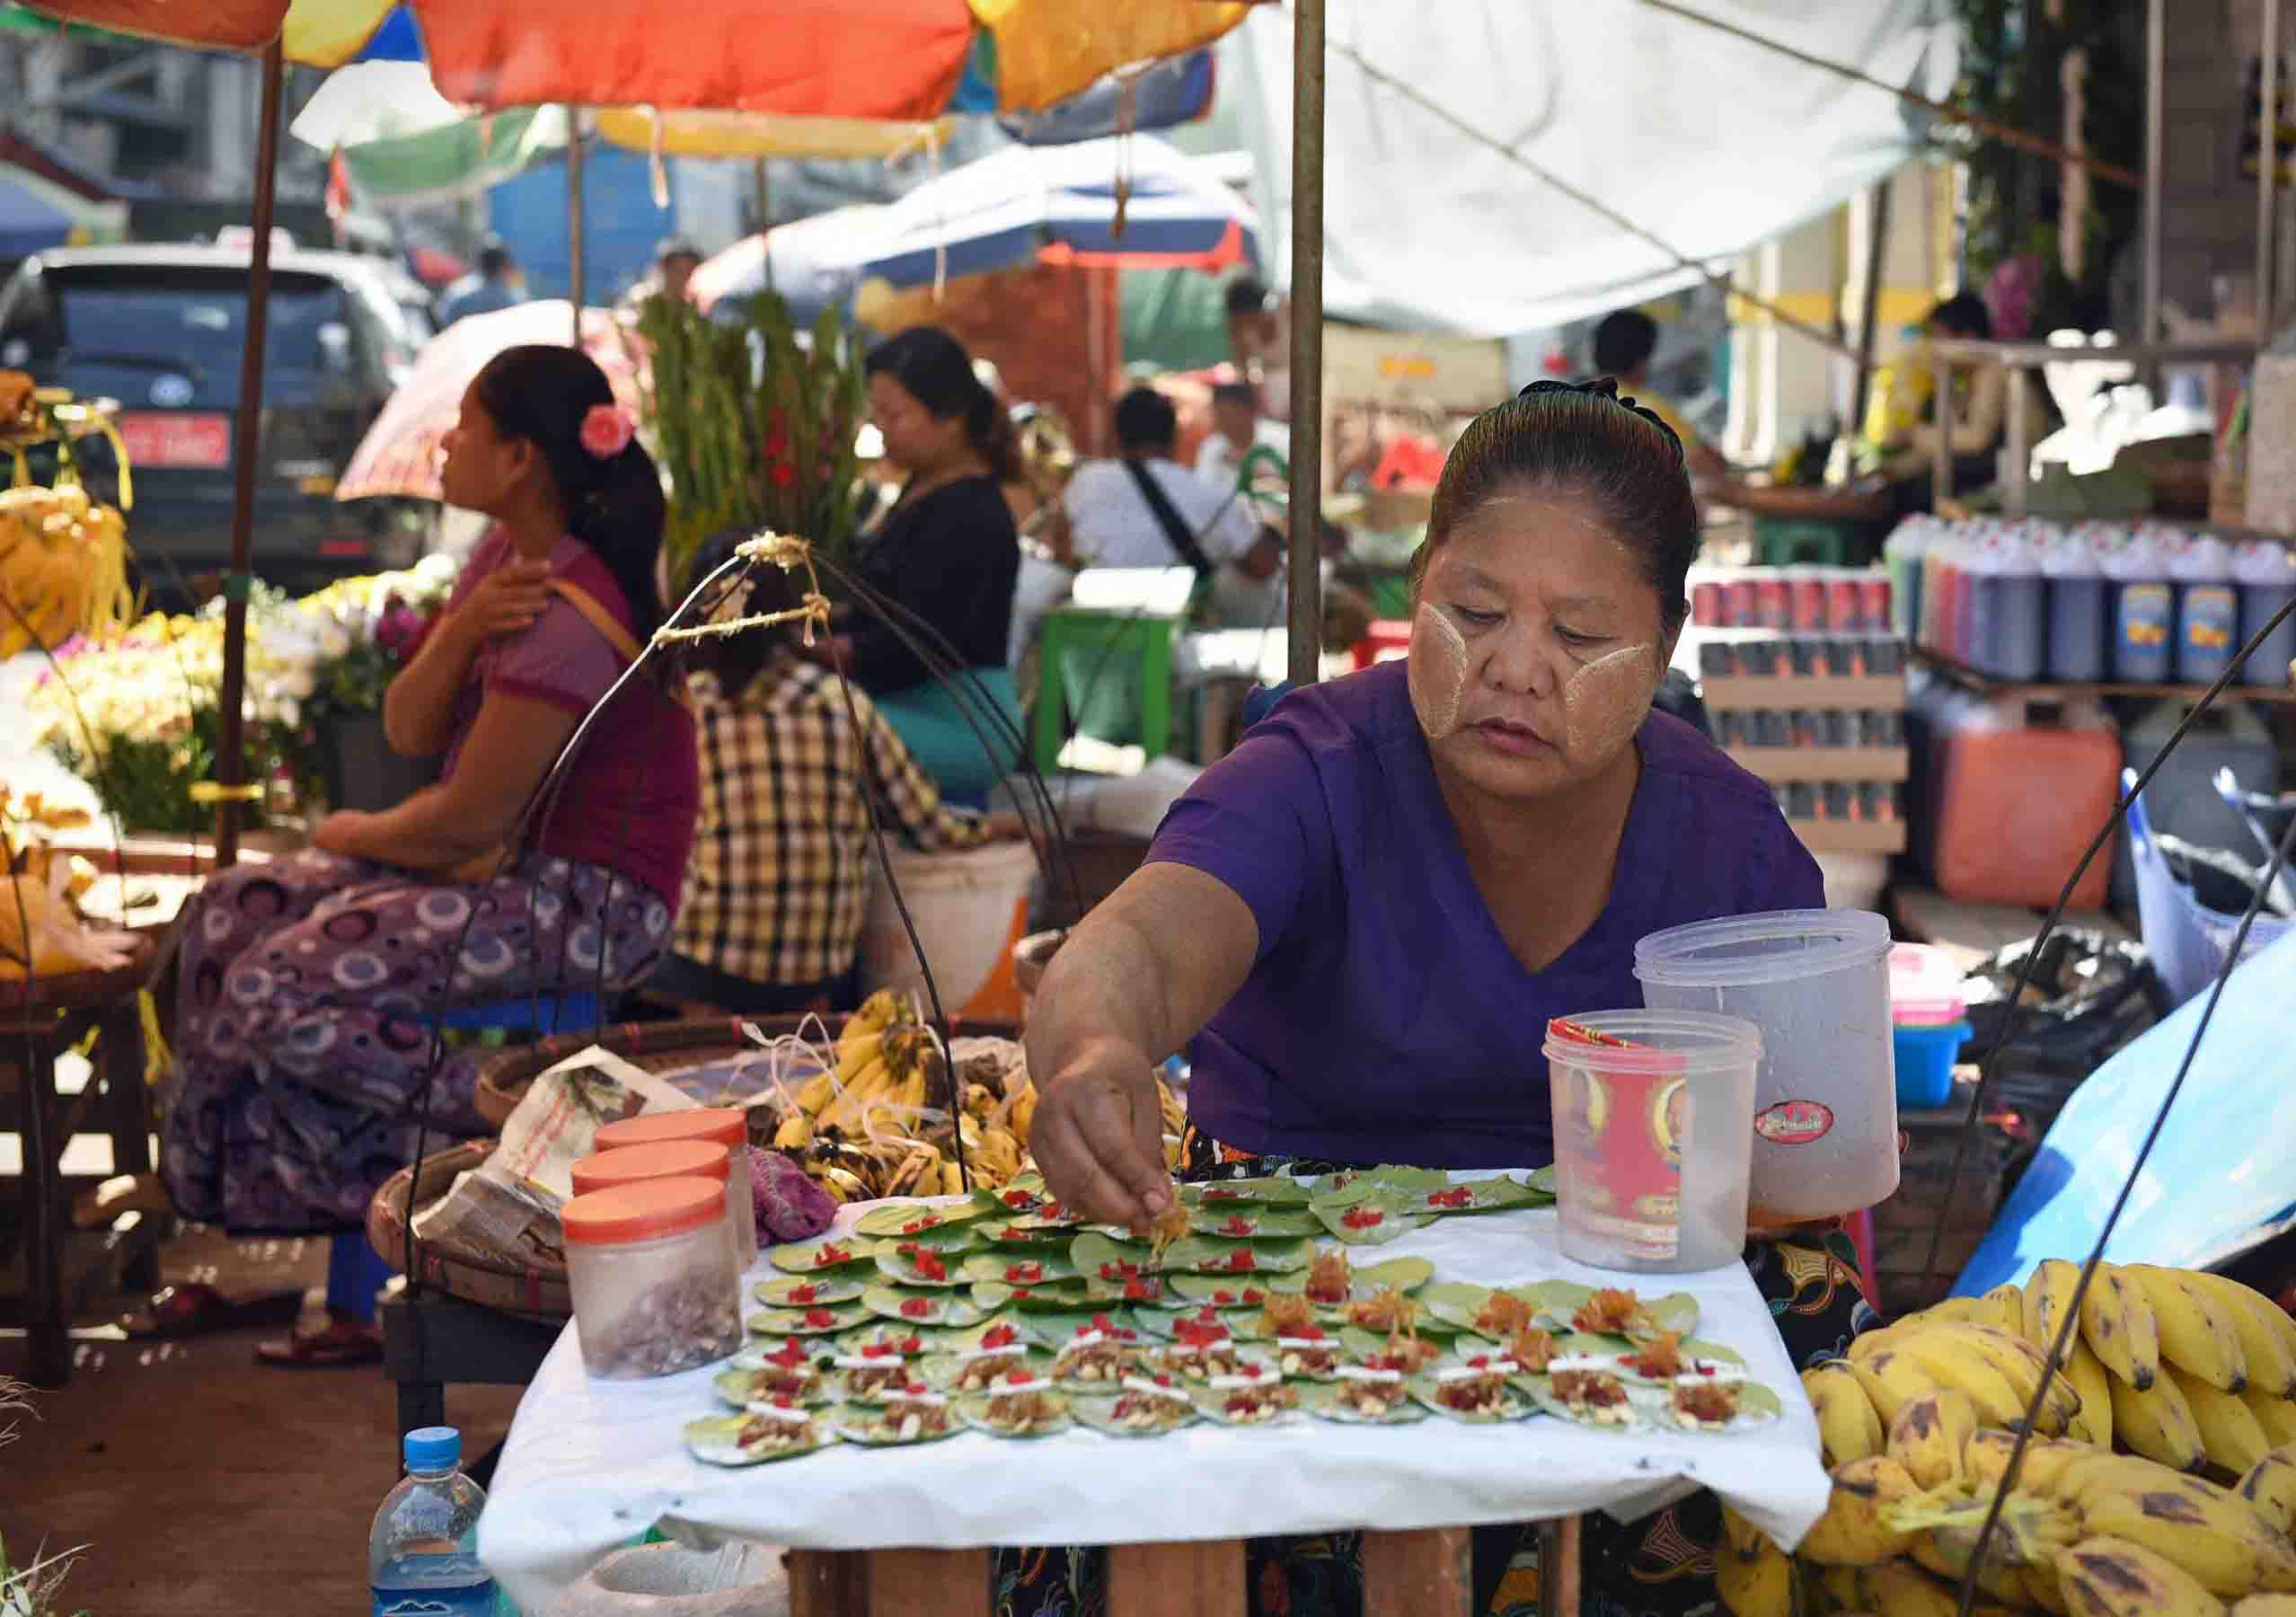 Making paan, a Burmese snack with areca nut wrapped in betel leaves. (Photo: Naomi Hellmann)